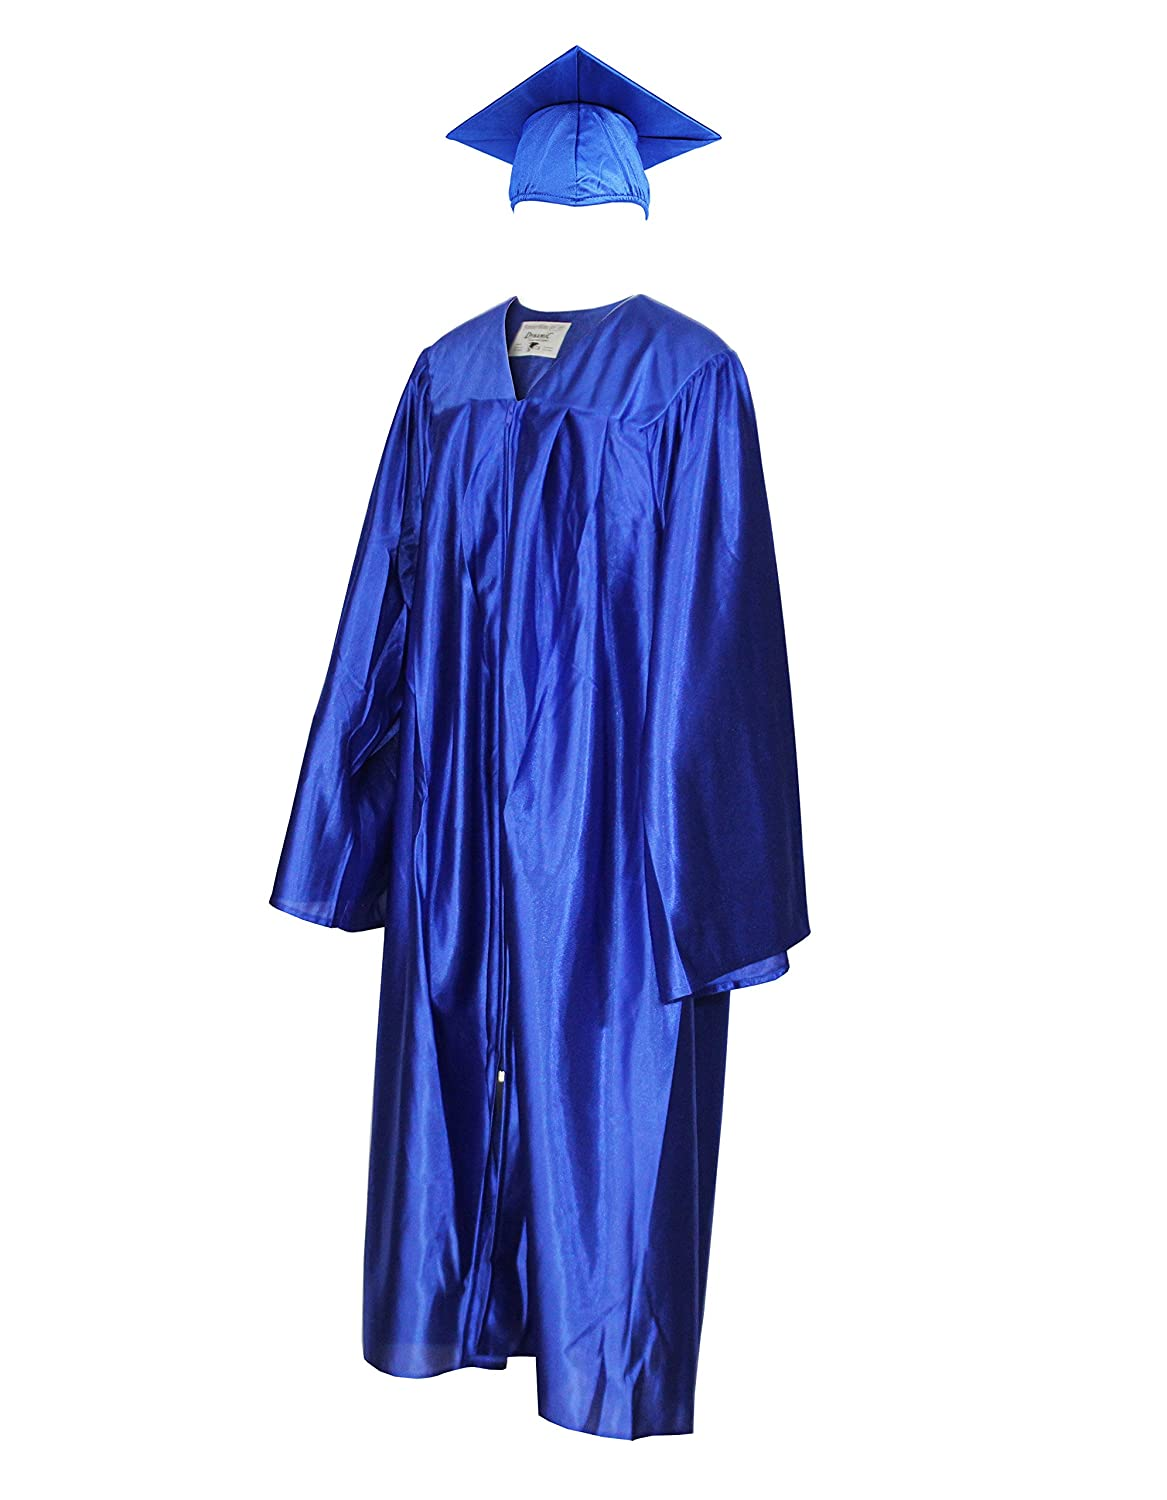 Amazon.com: Shiny Graduation Cap and Gown (Adult\'s Size): Clothing